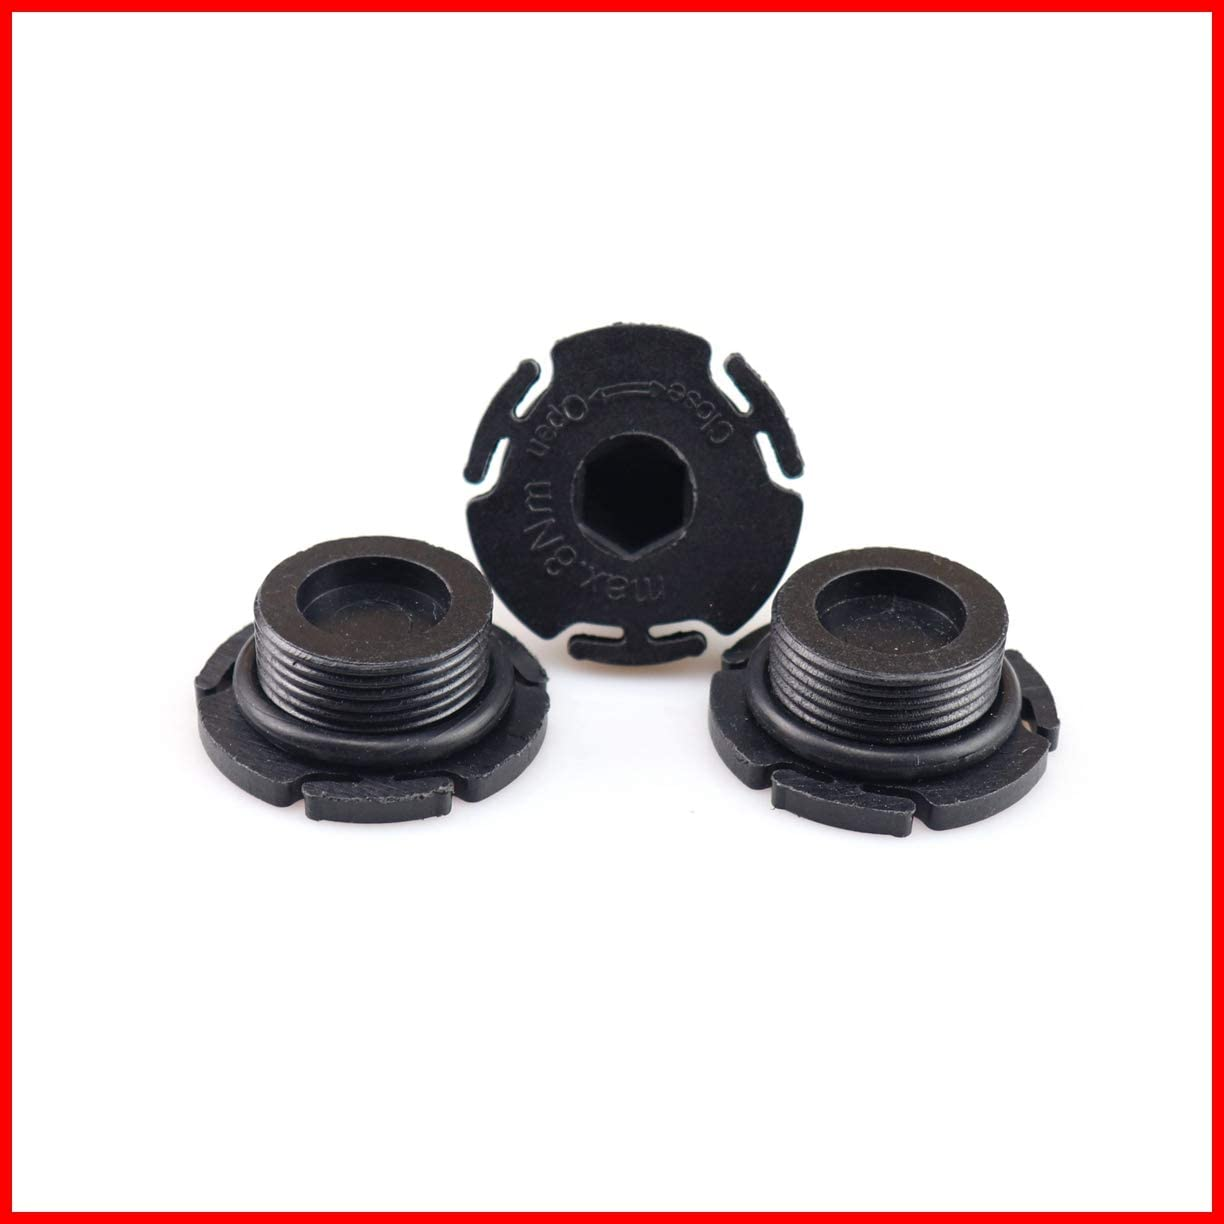 3PCS NEW Genuine Fits BMW E84 E89 F07N F10 F11 Engine Oil Drain Plugs OEM 11137605018//Engine Oil Pan Drain Plug With O-Ring X1 28i Z4 28i 528i 528i 228i 320i 328i 328i 428i 428i 328i 428i